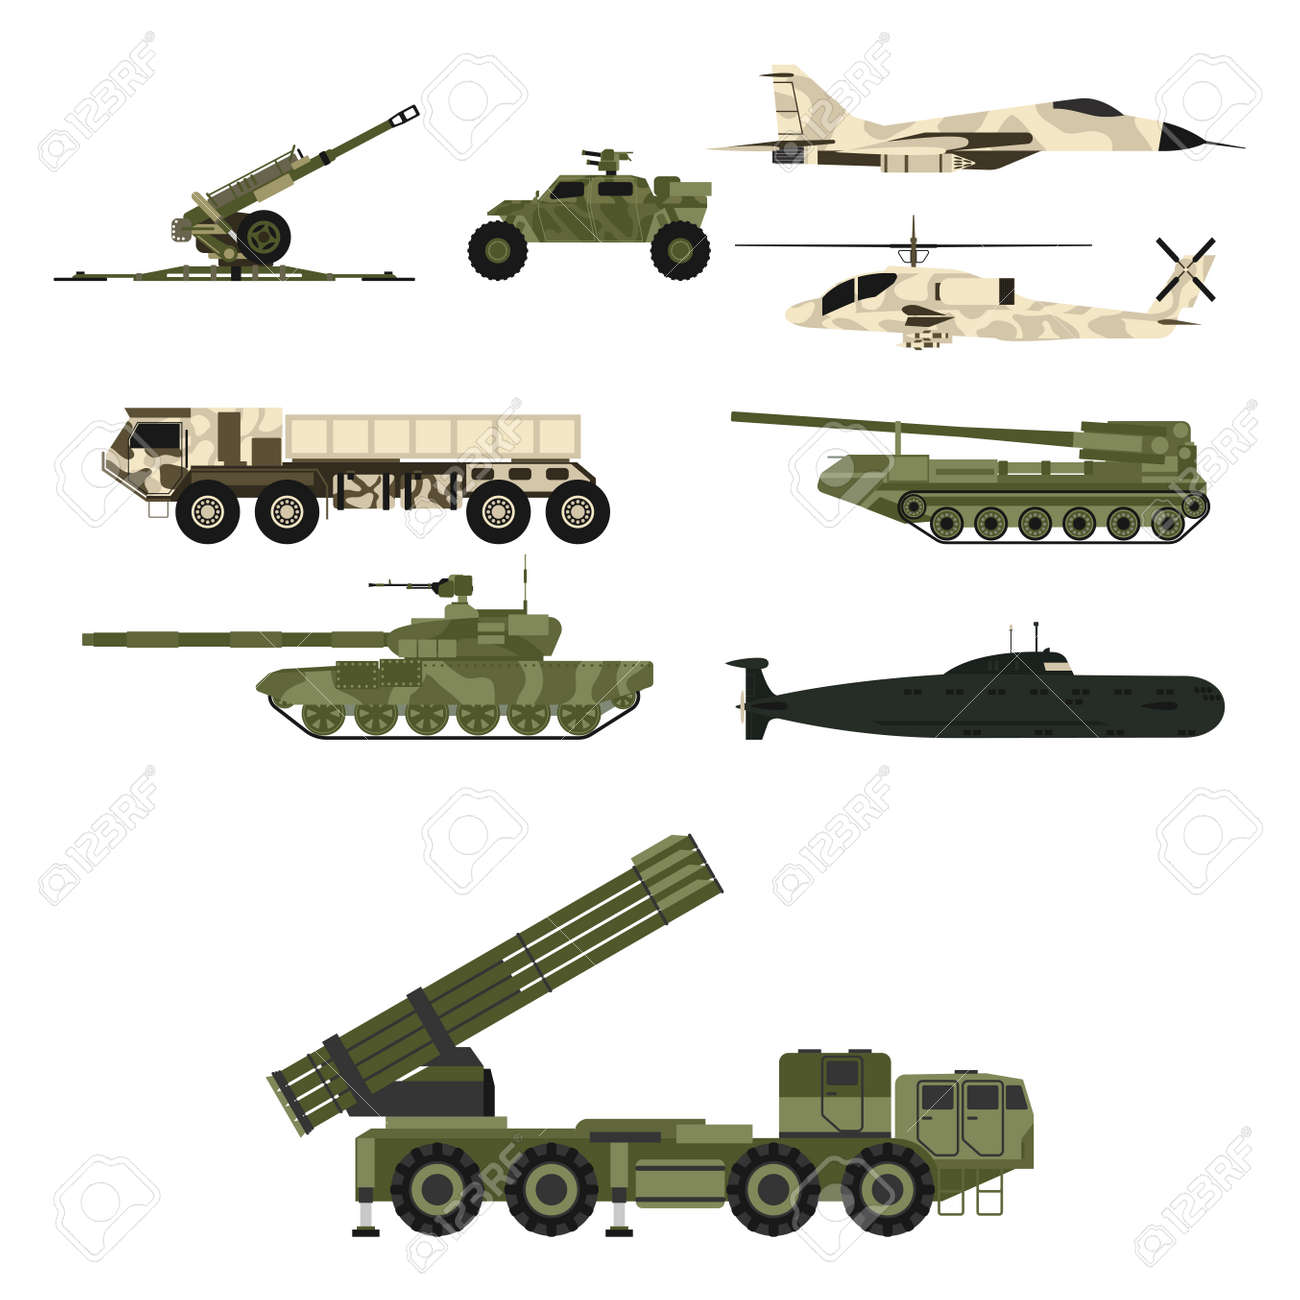 Military transport technic army war tanks industry technic armor system armored personnel army camouflage carriers weapon vector illustration. Fighting armed forces transportation. - 91651164